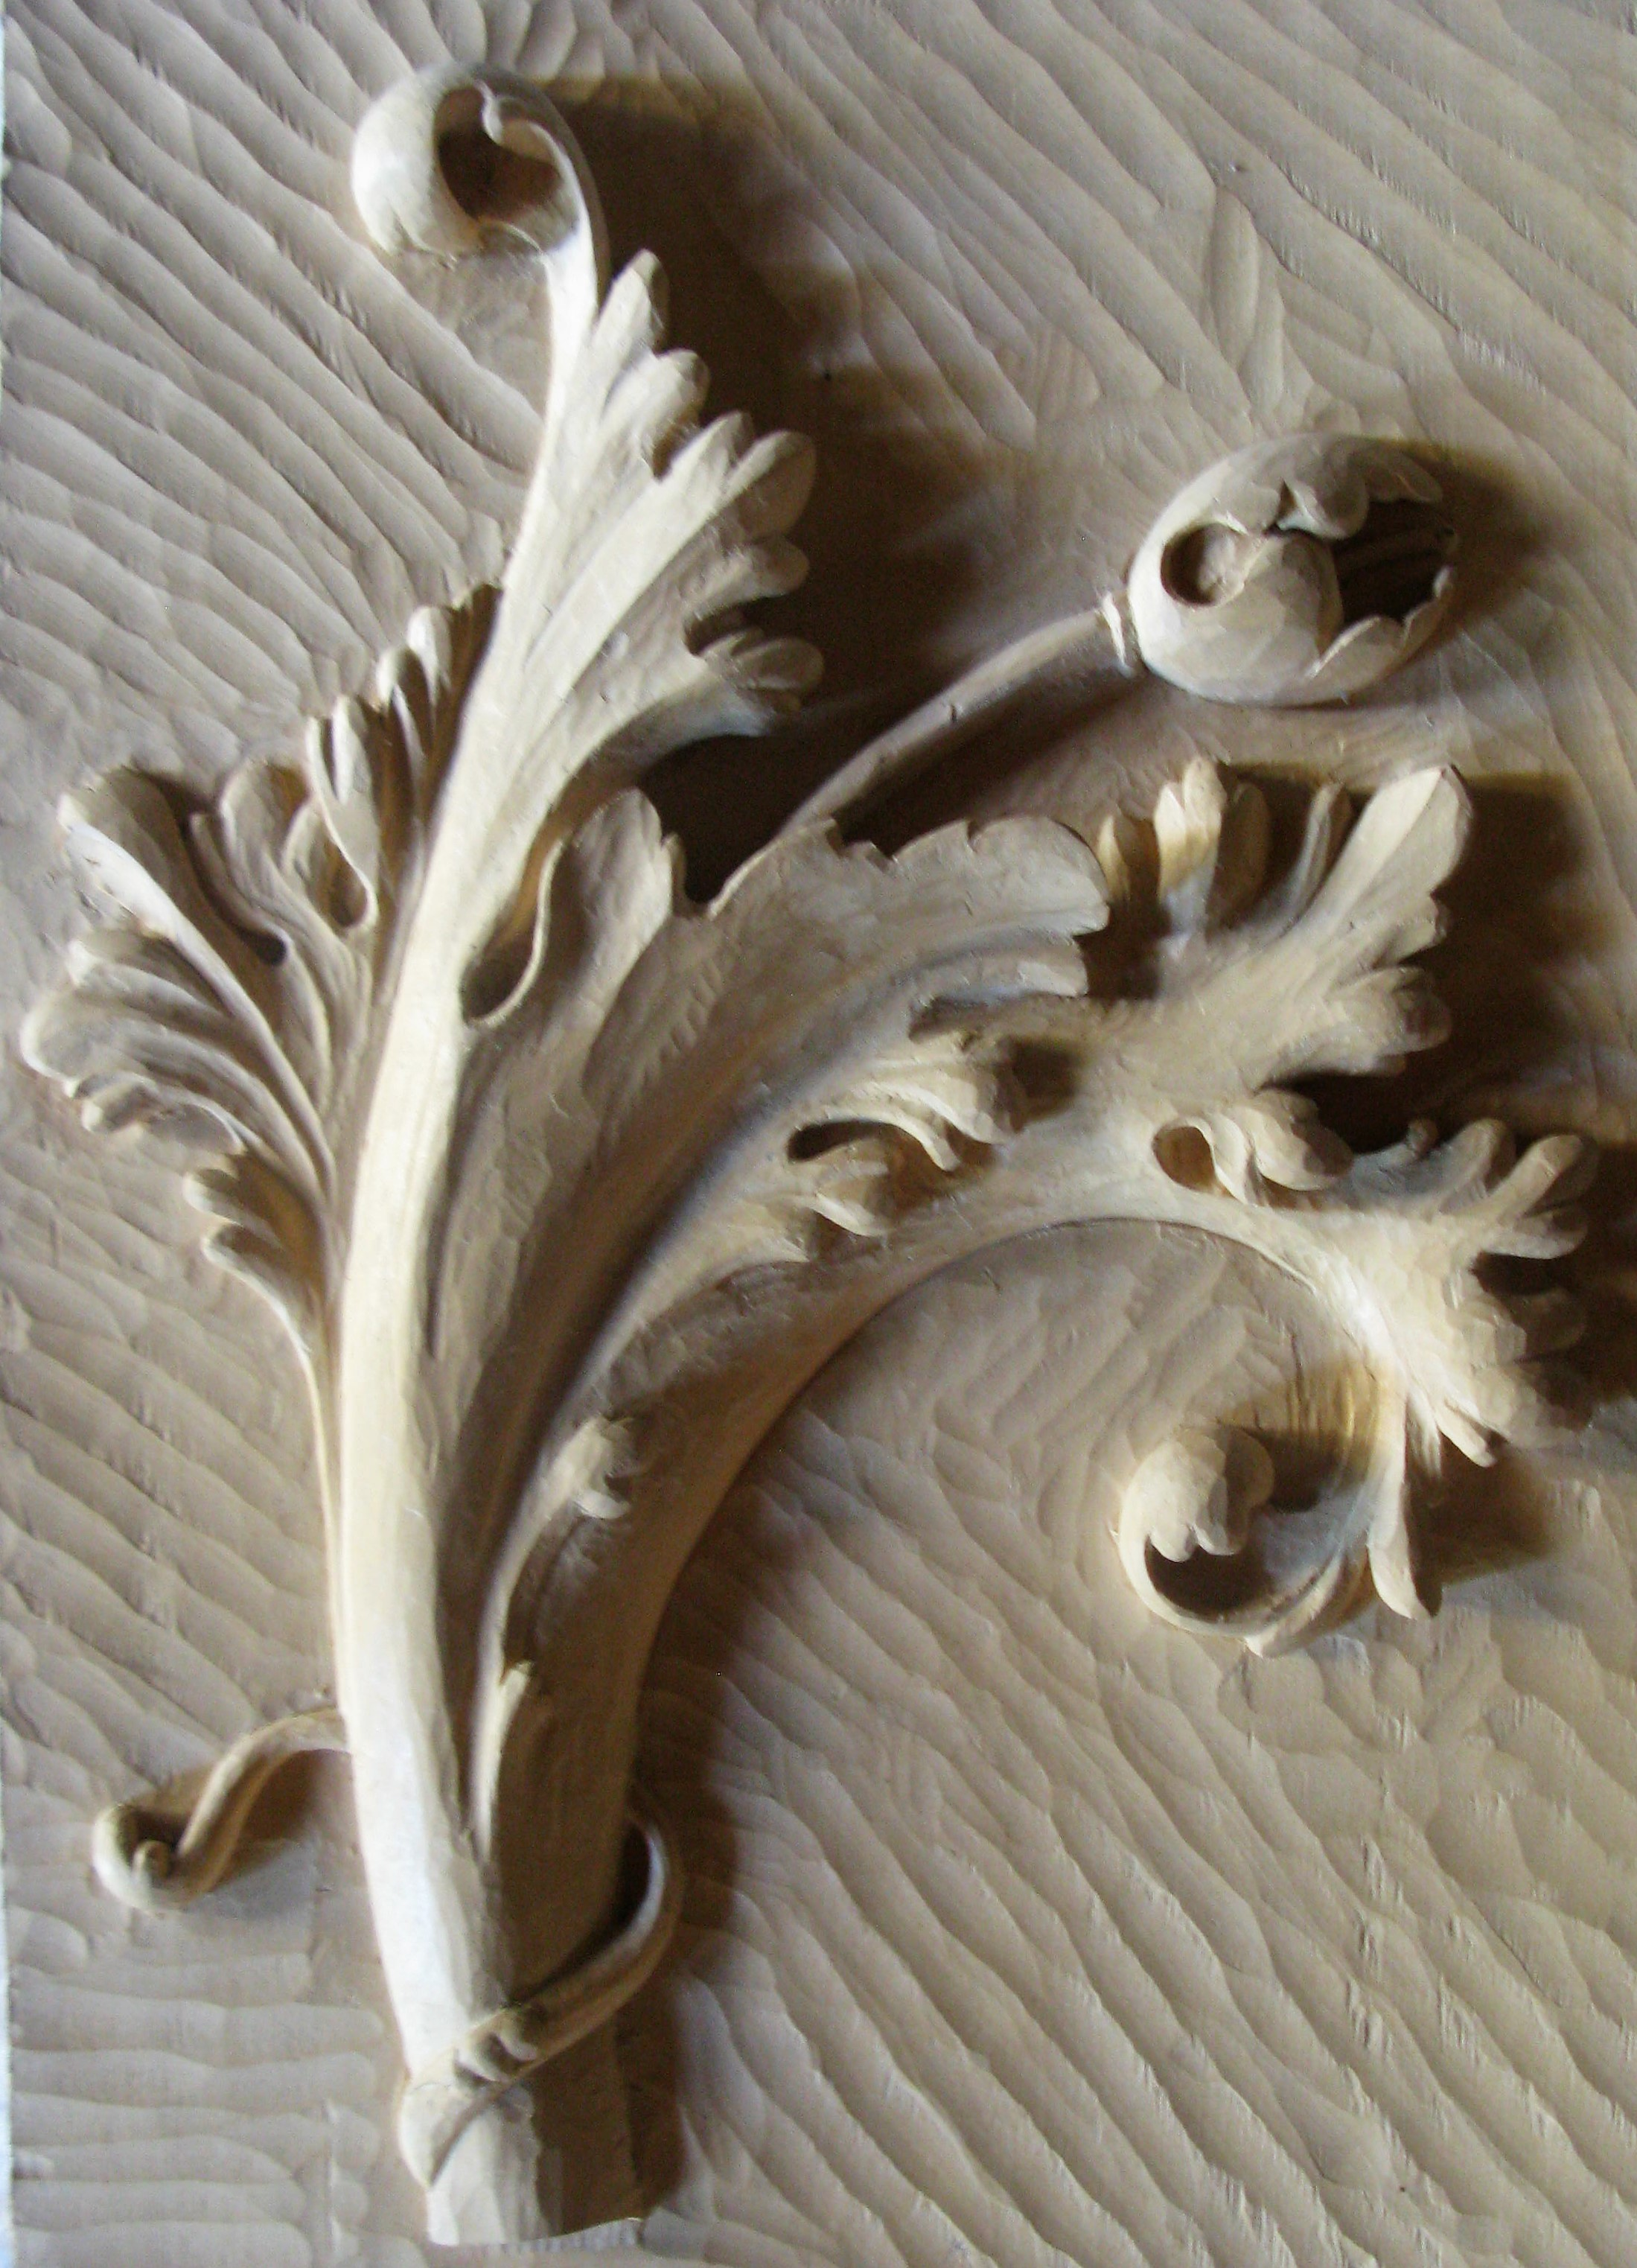 Woodcarving Tuesday Evening – Winter 2021